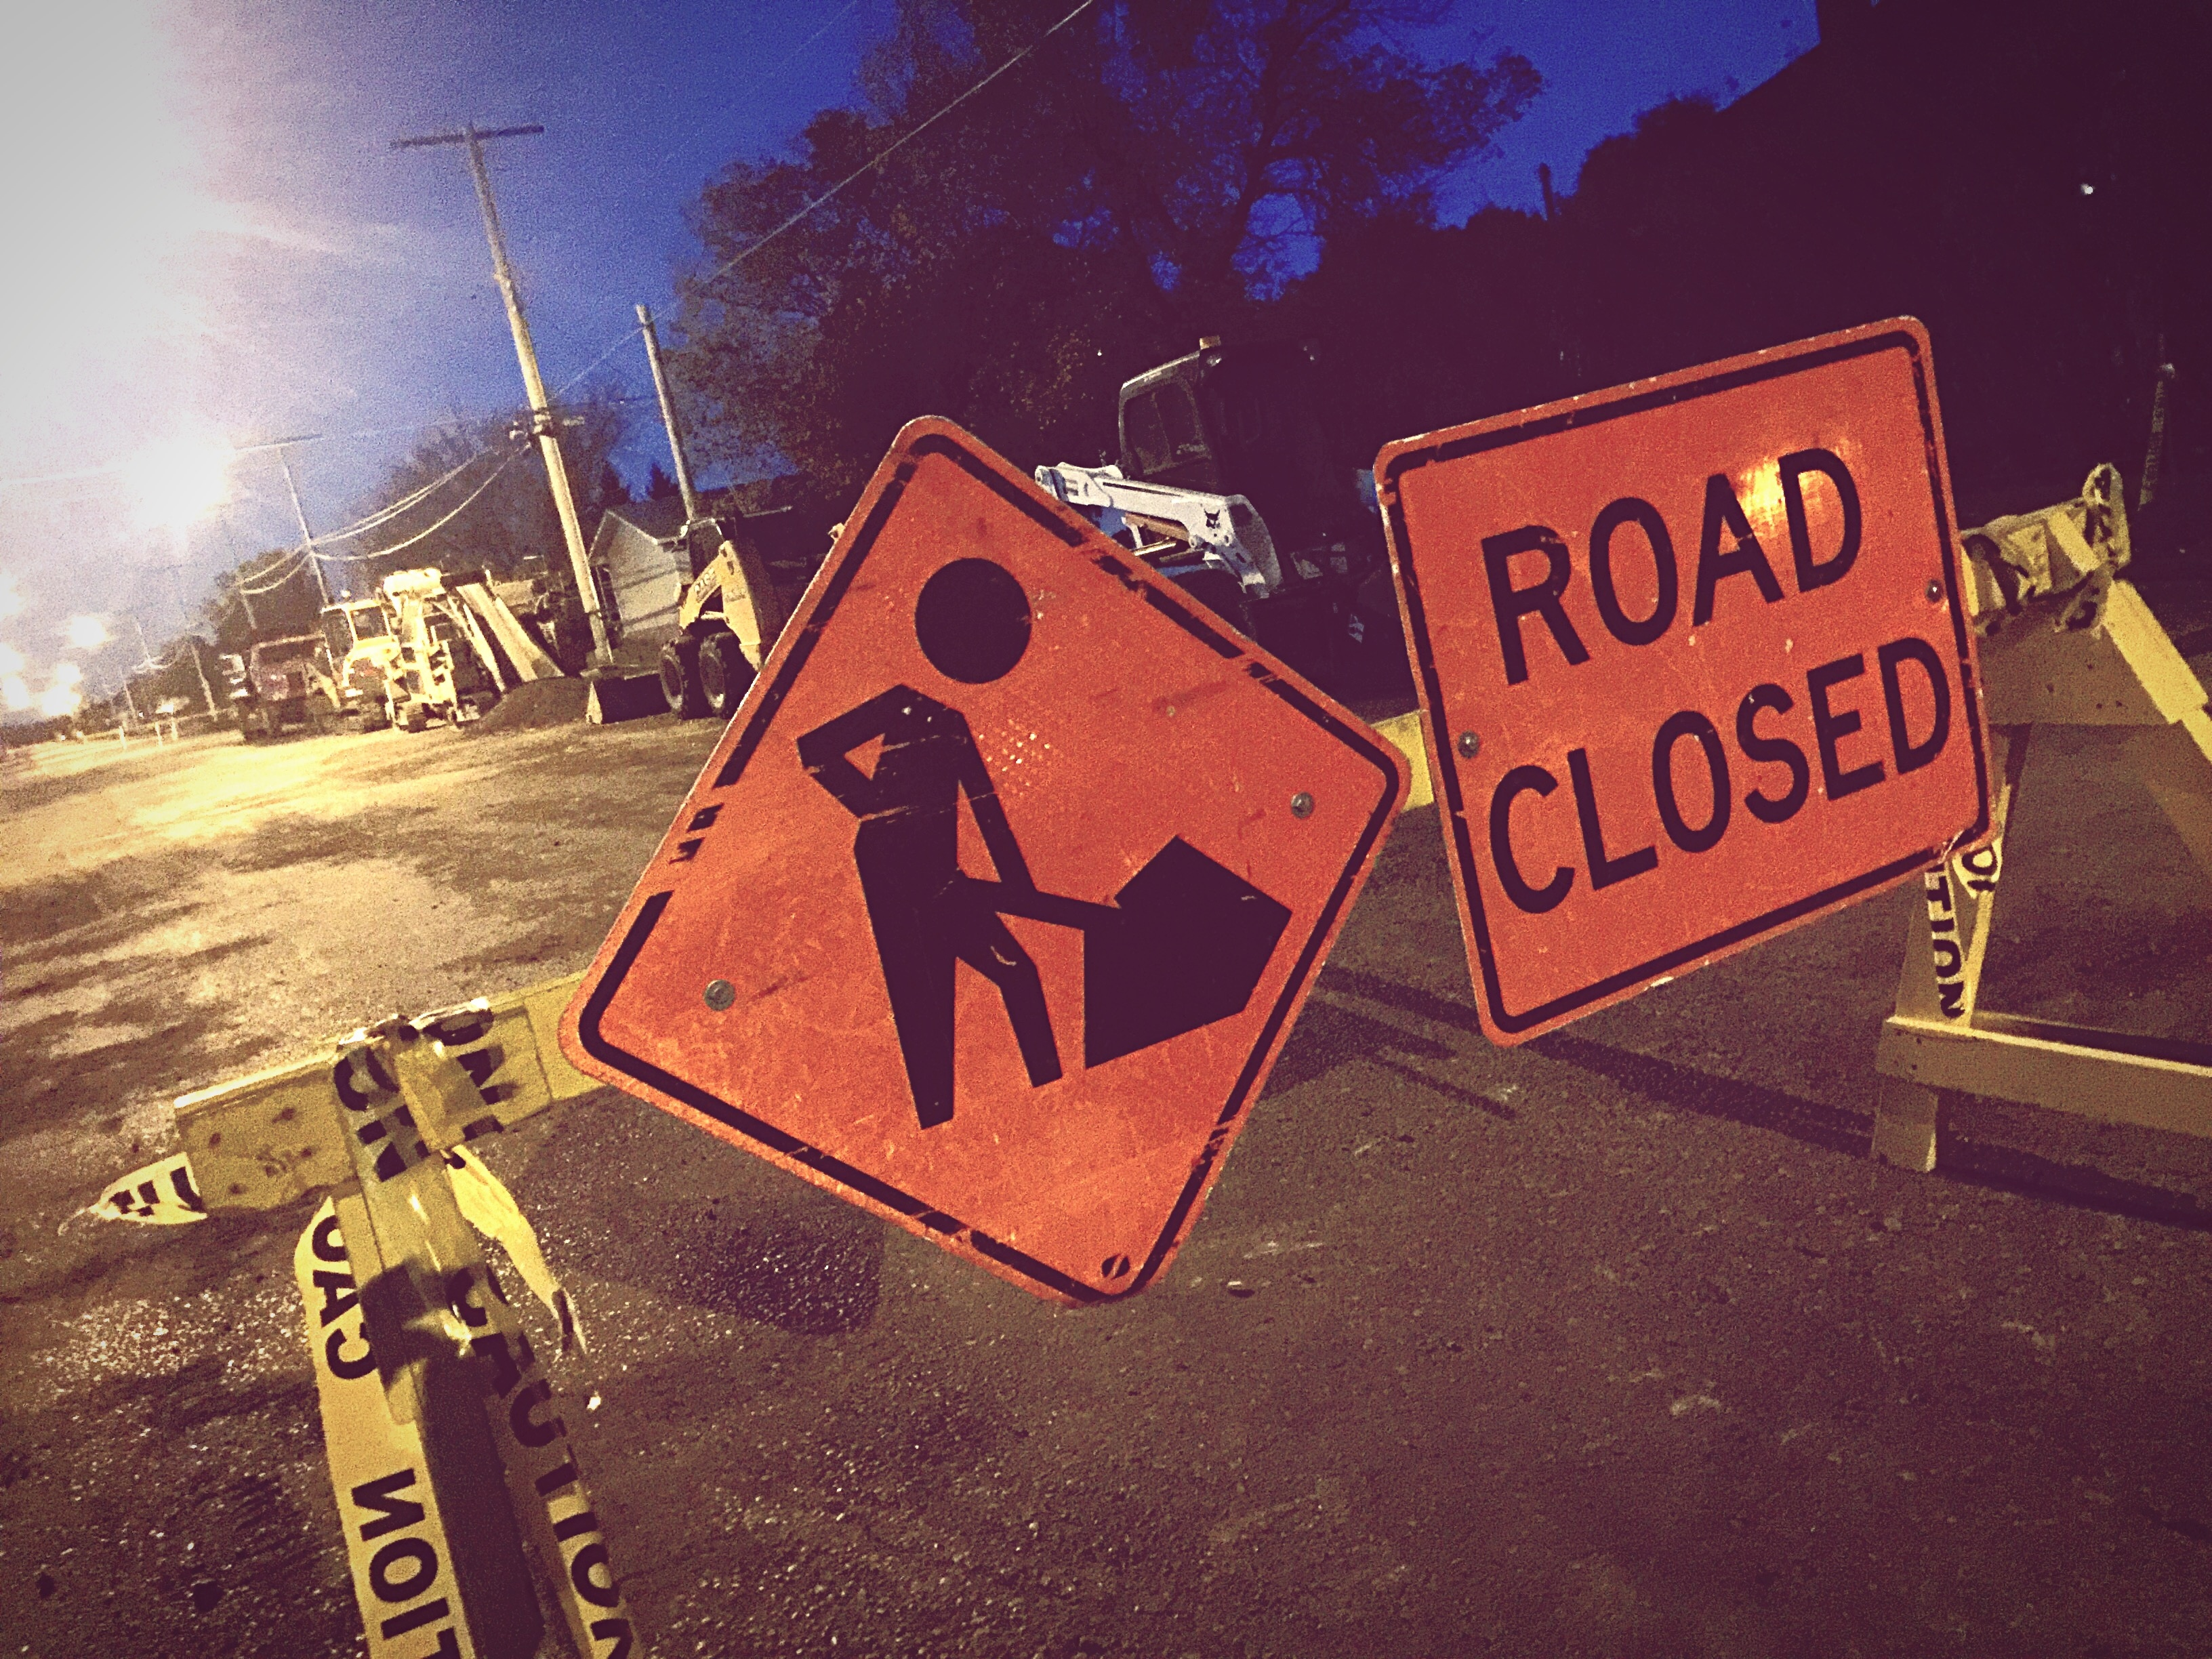 Road Closed Sign On Barricade At Night